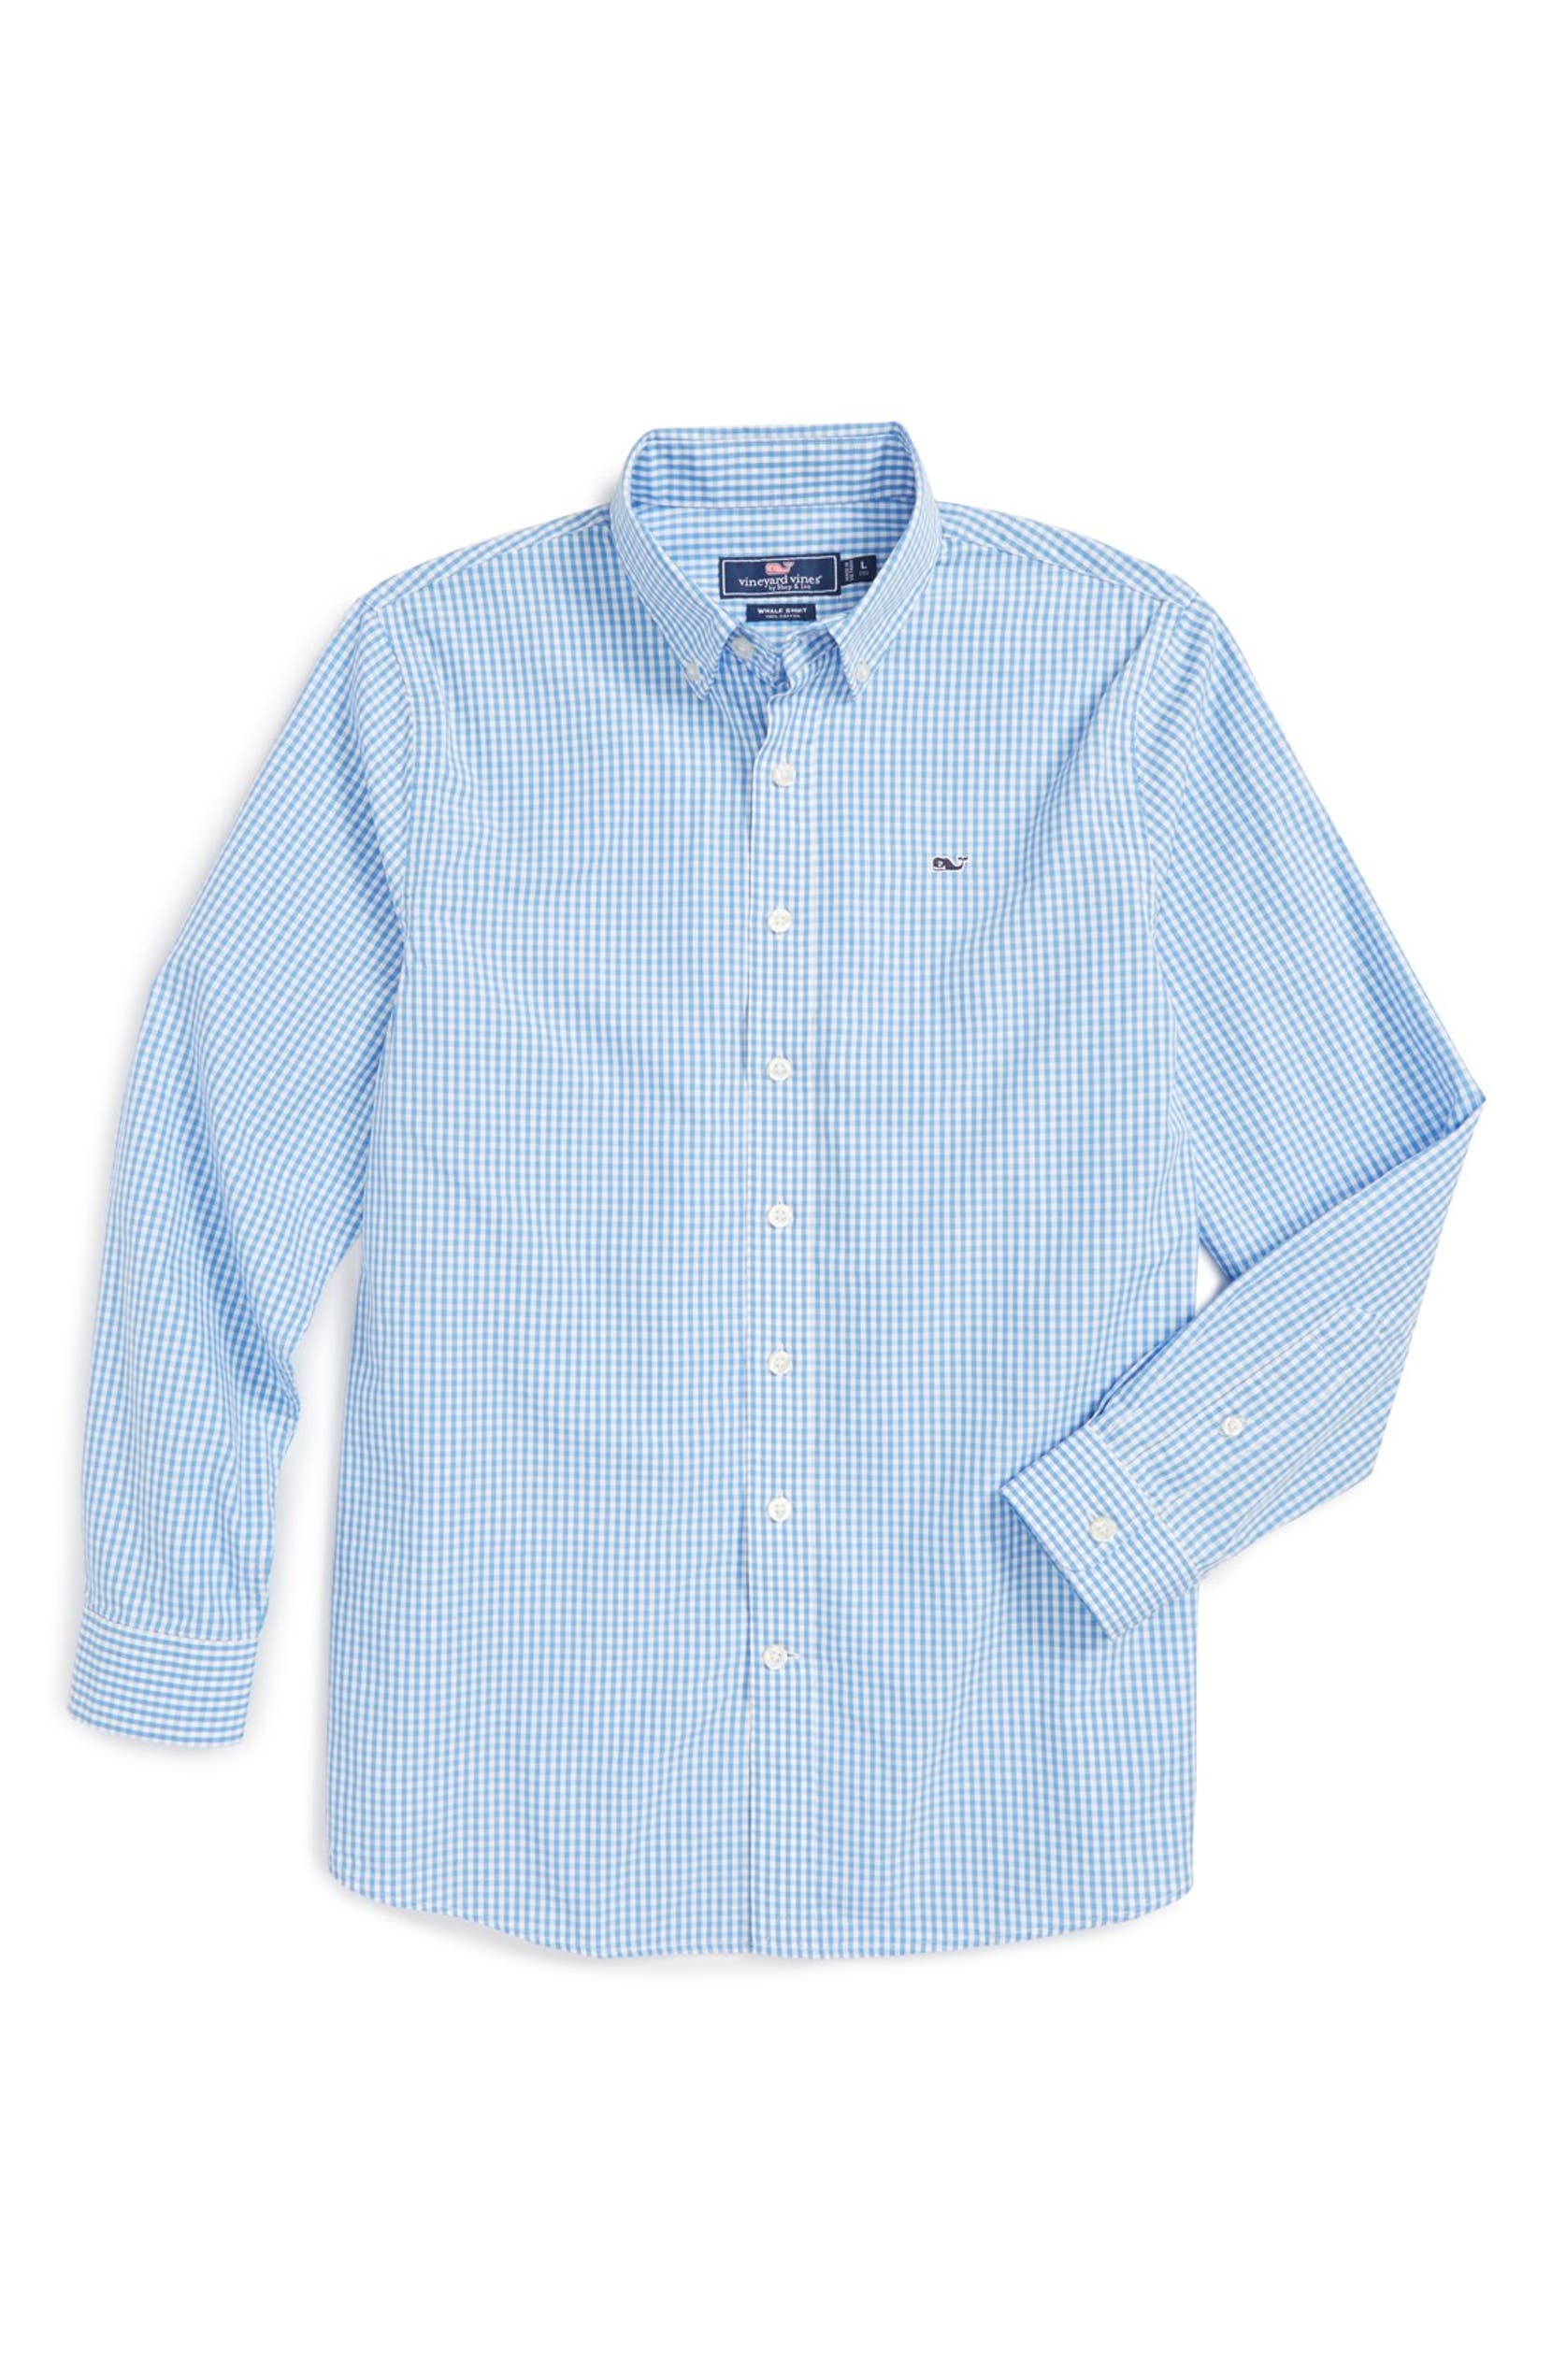 7b631b11 Vineyard Vines 'Classic Gingham - Whale' Long Sleeve Sport Shirt (Big Boys)  | Nordstrom